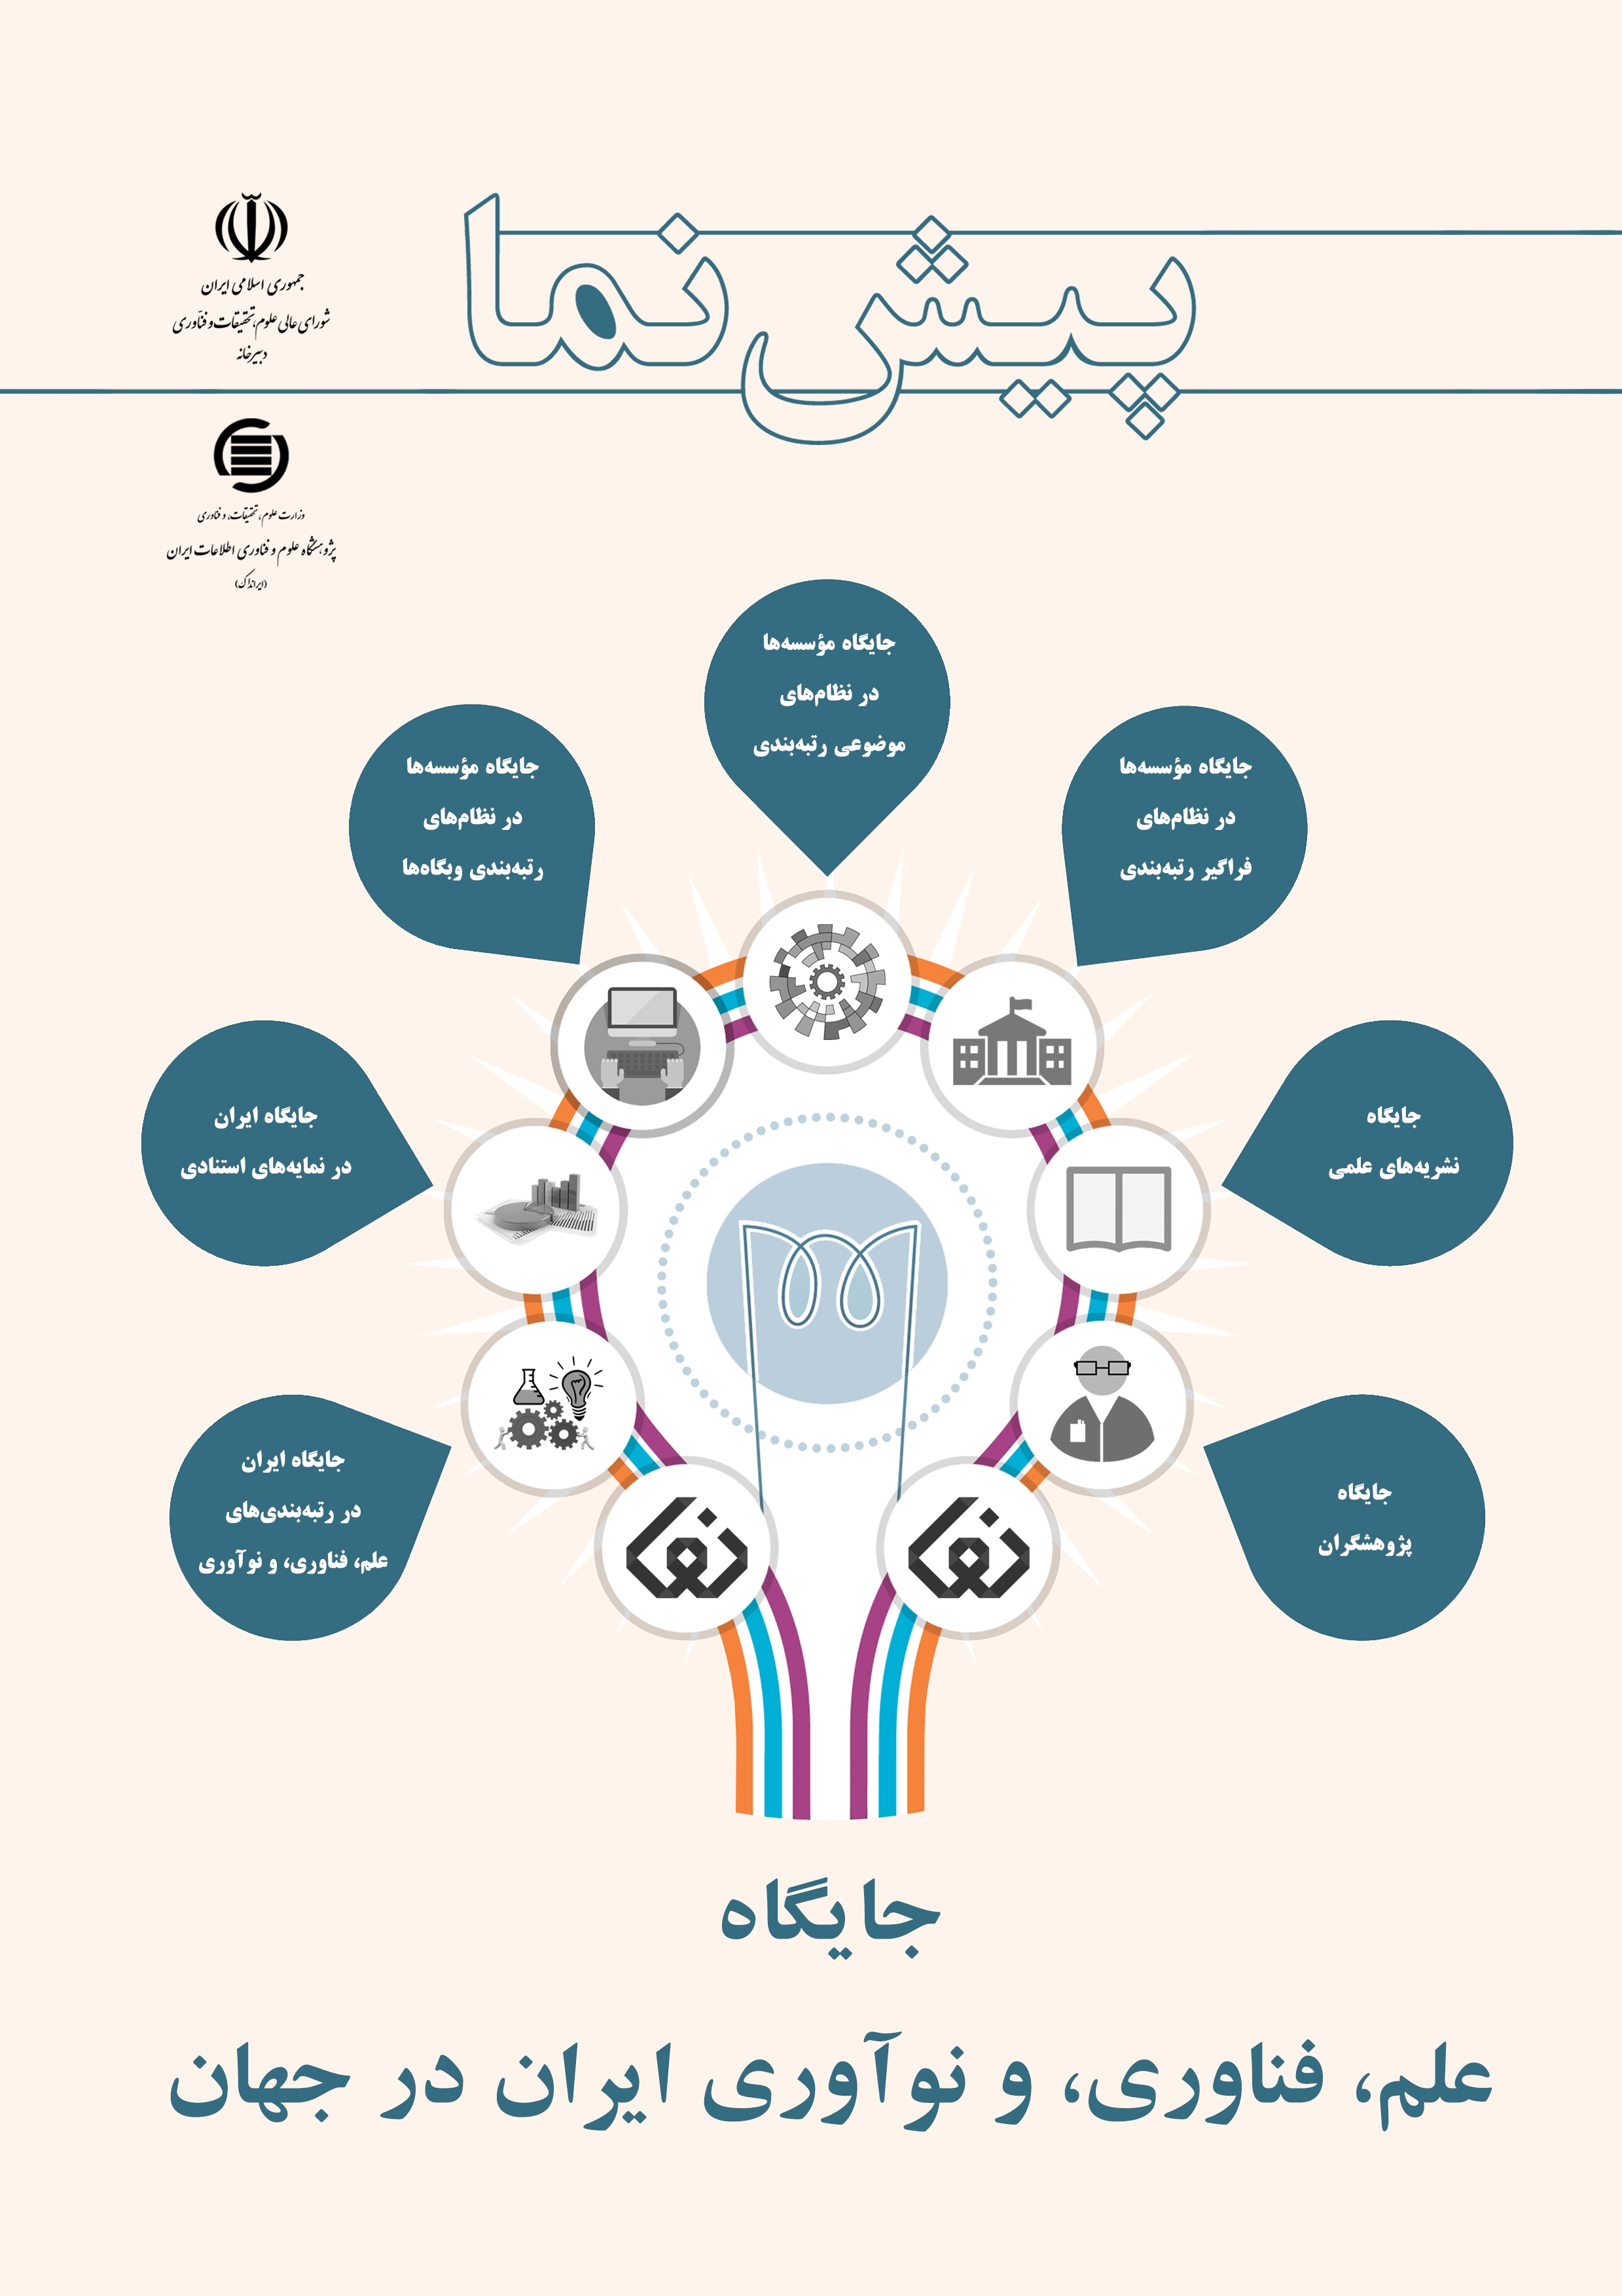 Pish-nema: Iran in Science, Technology, and Innovation Global Indices